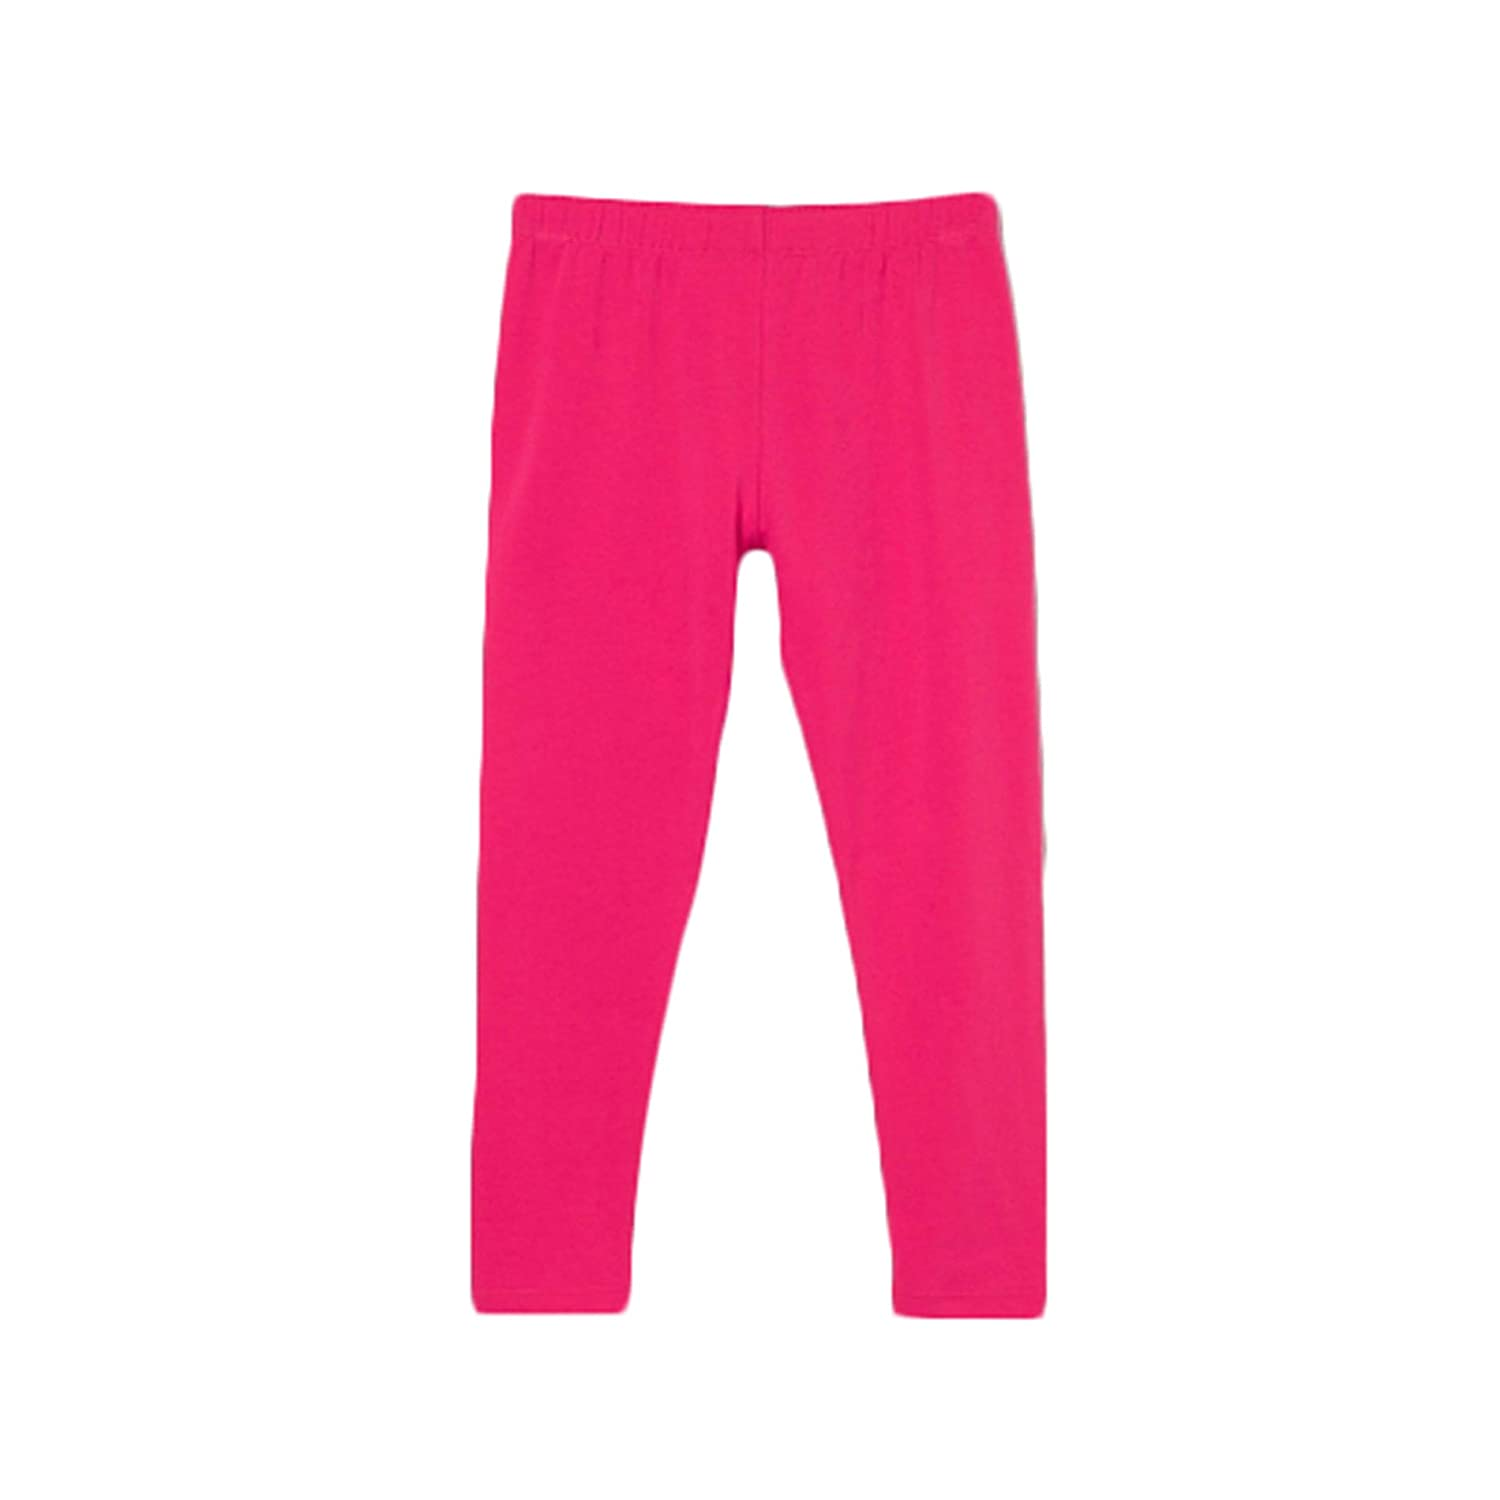 16 bossini Passionate Girls Solid Leggings Red,US Size 3t